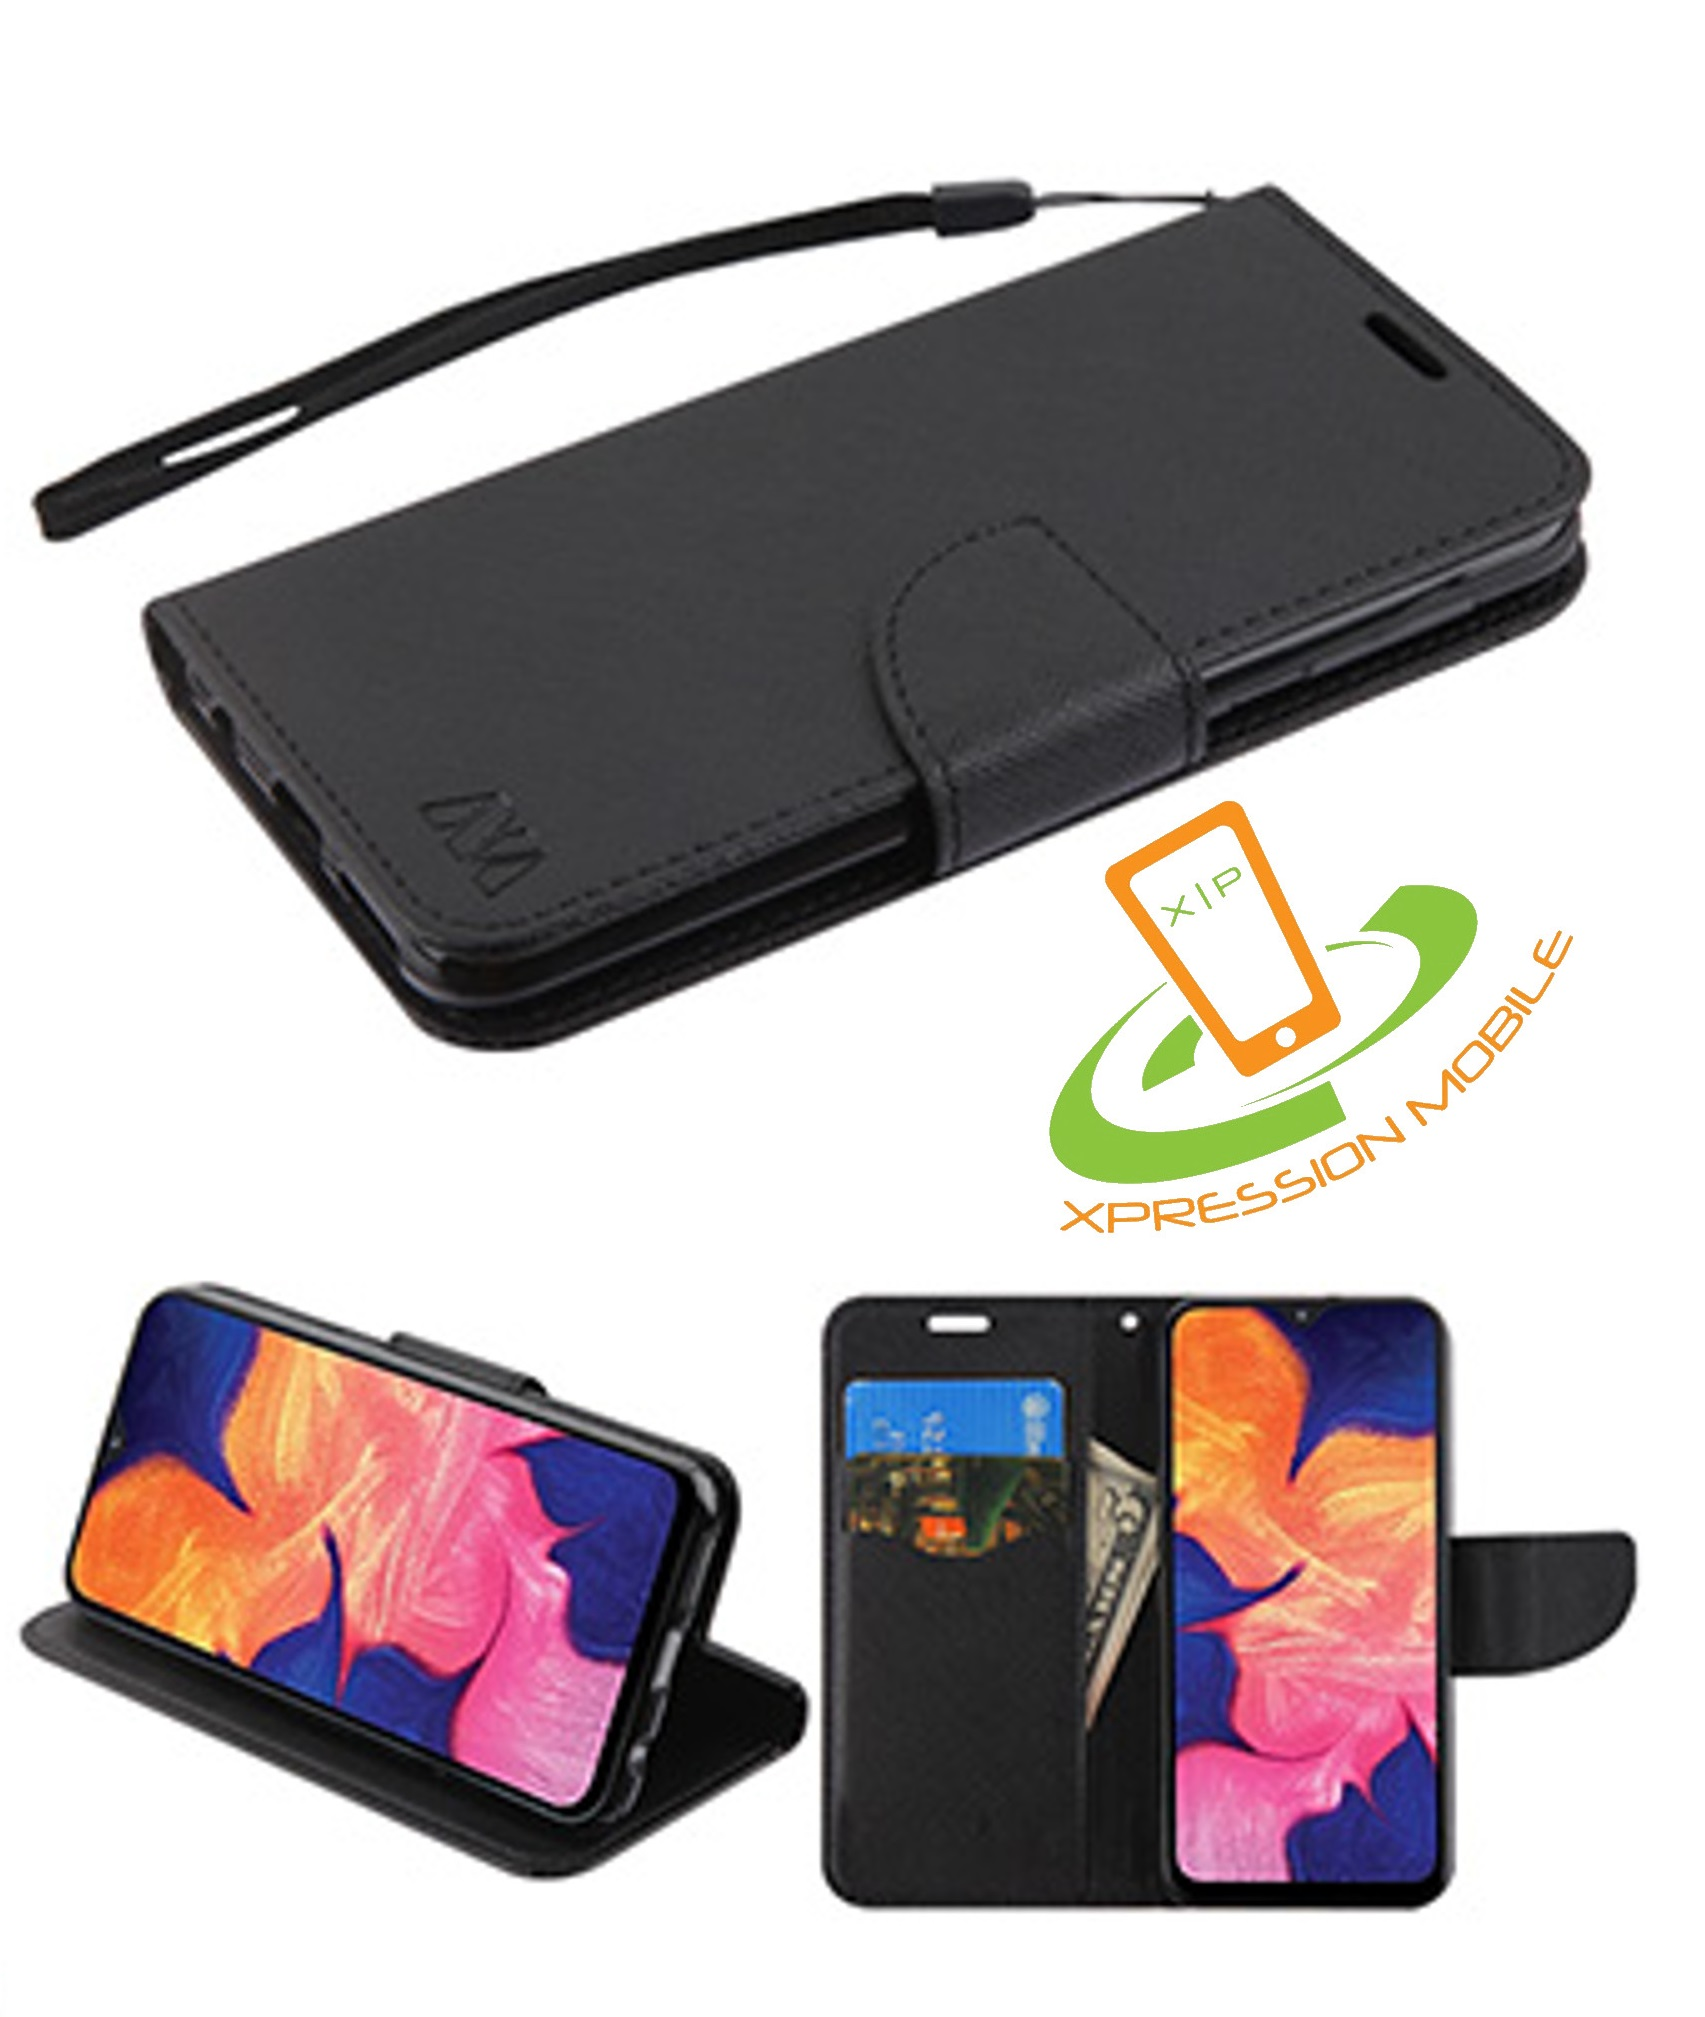 Samsung Galaxy A10 Flip Case Cover for Samsung Galaxy A10 Leather Card Holders Wallet case Extra-Protective Business Kickstand with Free Waterproof-Bag Business